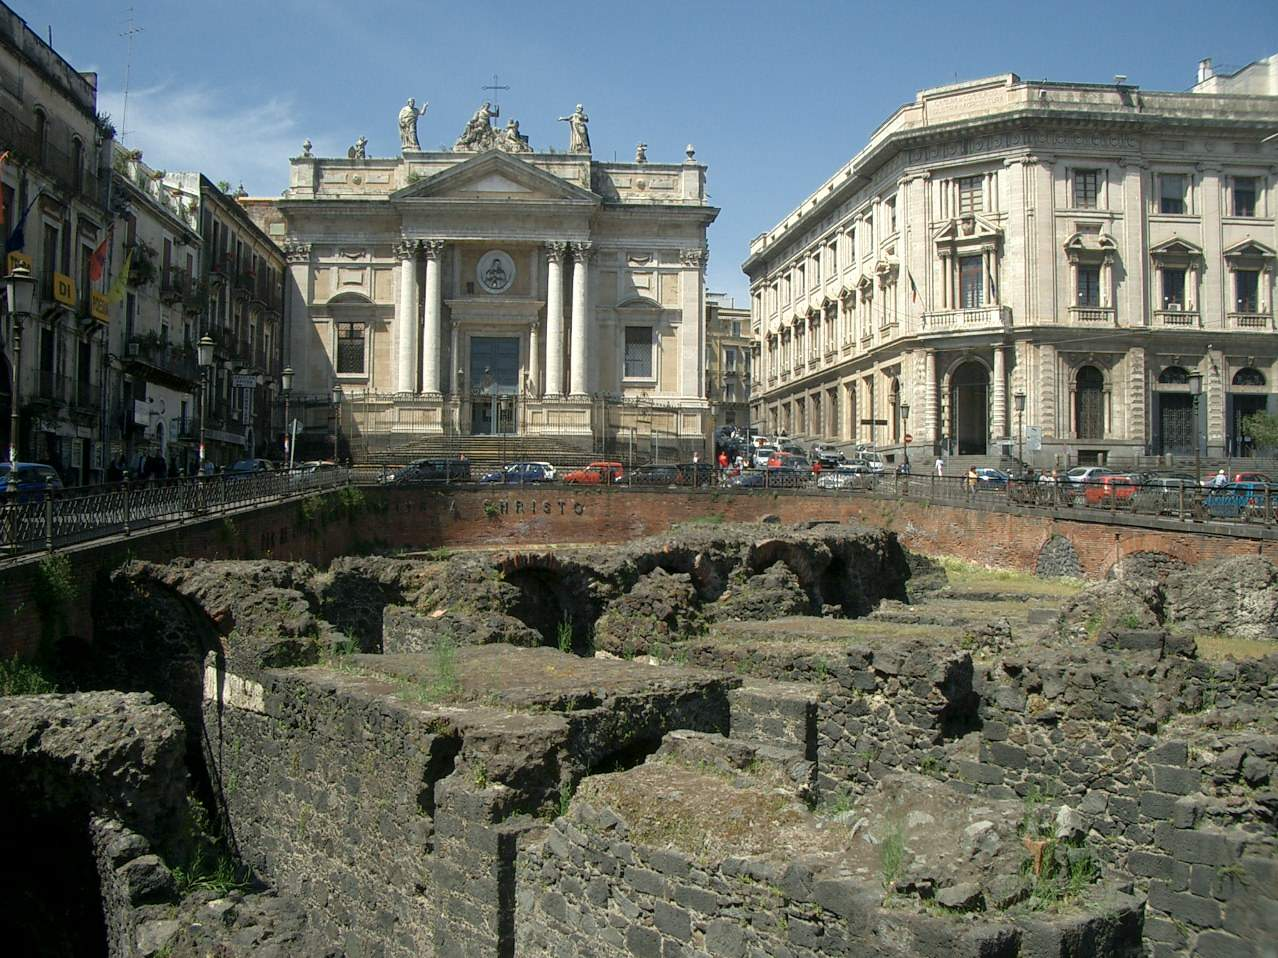 Archaeological Sites & Ruins Around The World - Page 5 - SkyscraperCity